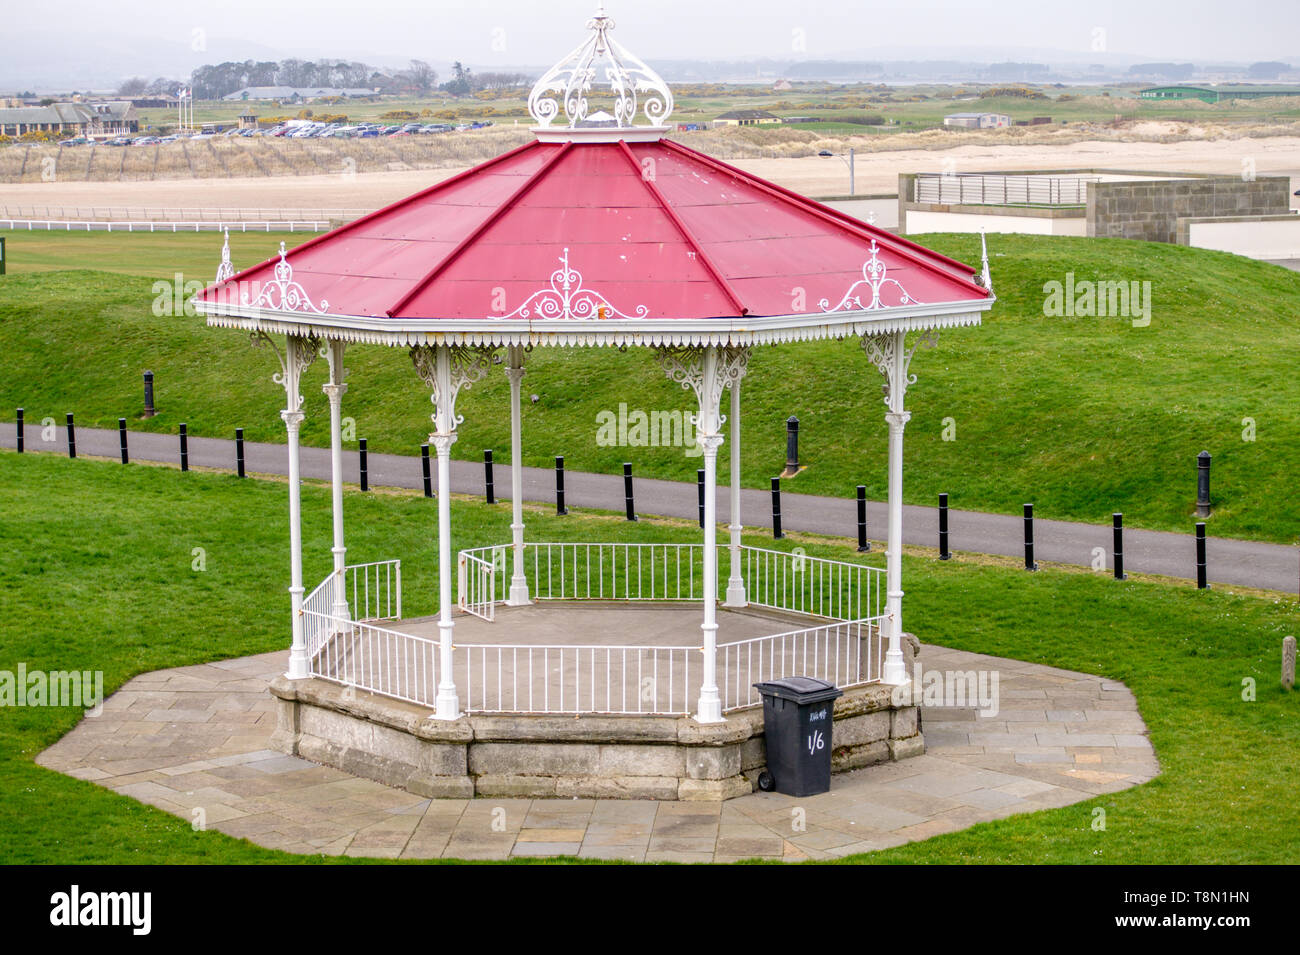 Bandstand by the Sea - Stock Image